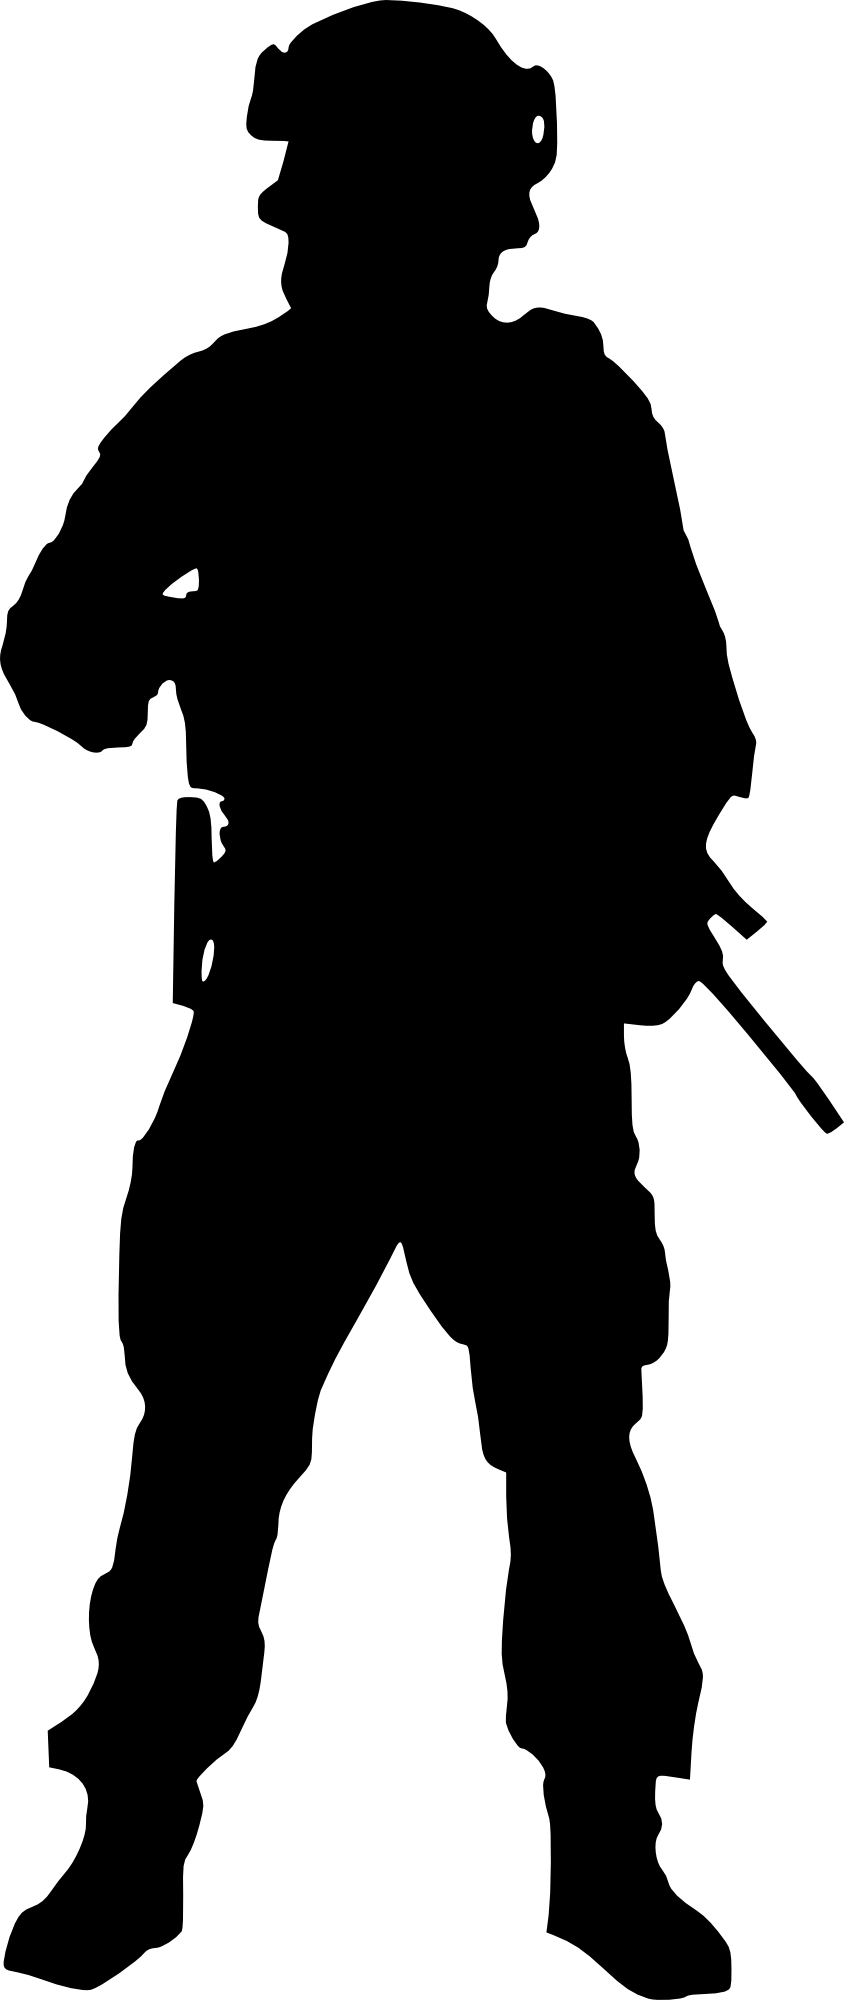 soldiers silhouette clip art at getdrawings com free for personal rh getdrawings com